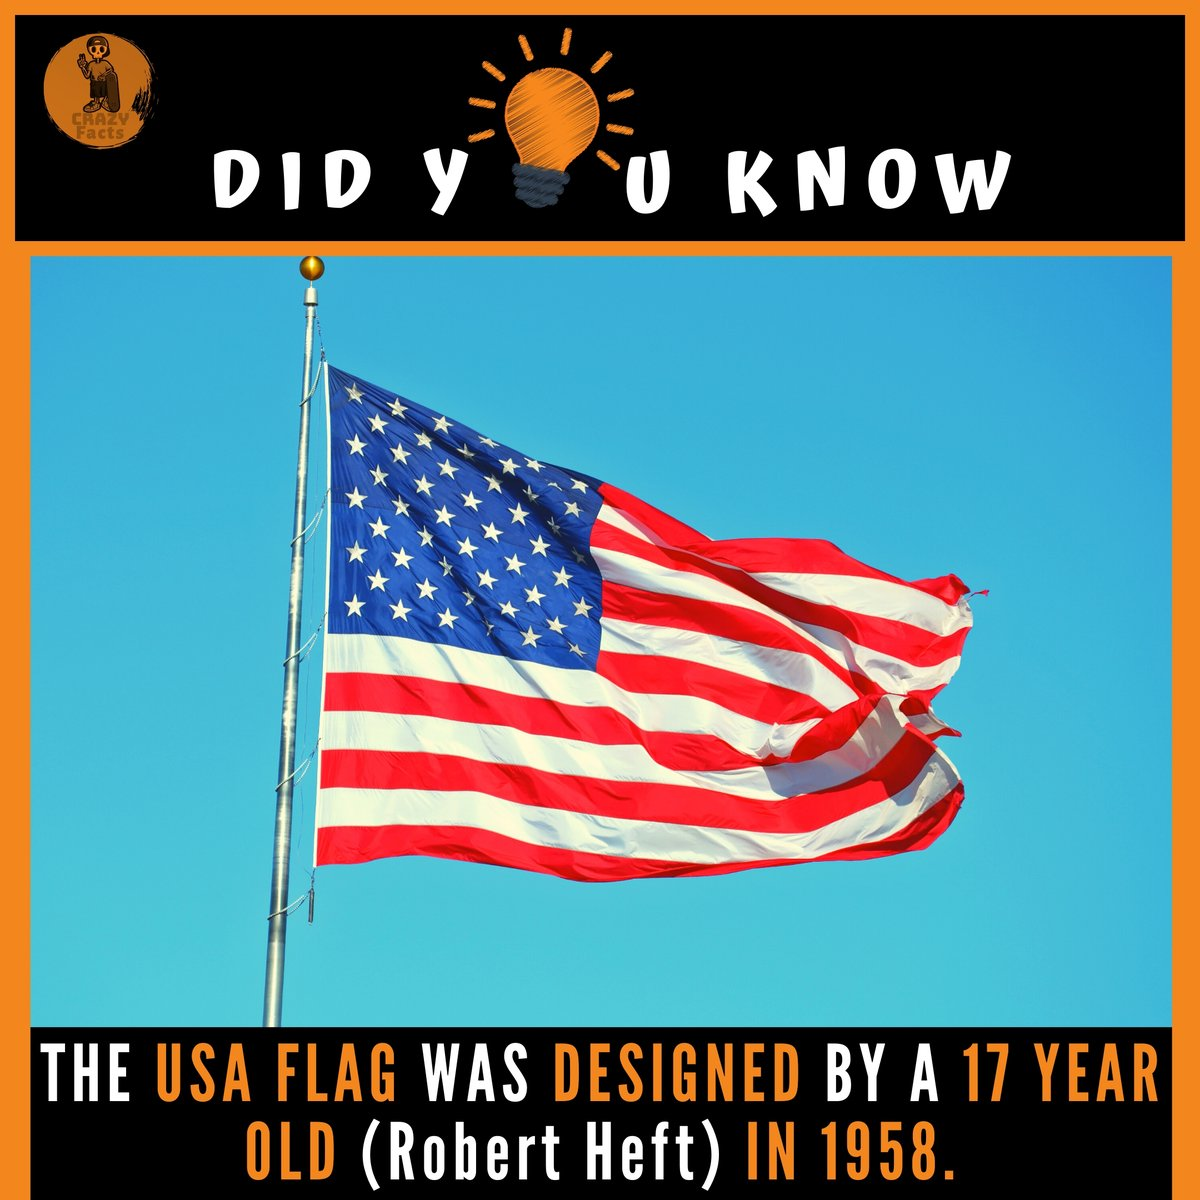 THE USA FLAG WAS DESOGNED BY A 17 YEAR OLD IN 1958.  @CrazyFacts41   #fact #worldgk #wifistudy #factsoflife #coolfacts #worldfacts #instafacts #facts #generalknowledge #didyouknowfacts #knowledgeispower #facts#factsdaily #factoftheday #dailyfacts #thefactsoflifepic.twitter.com/rJlrLGe4Fs